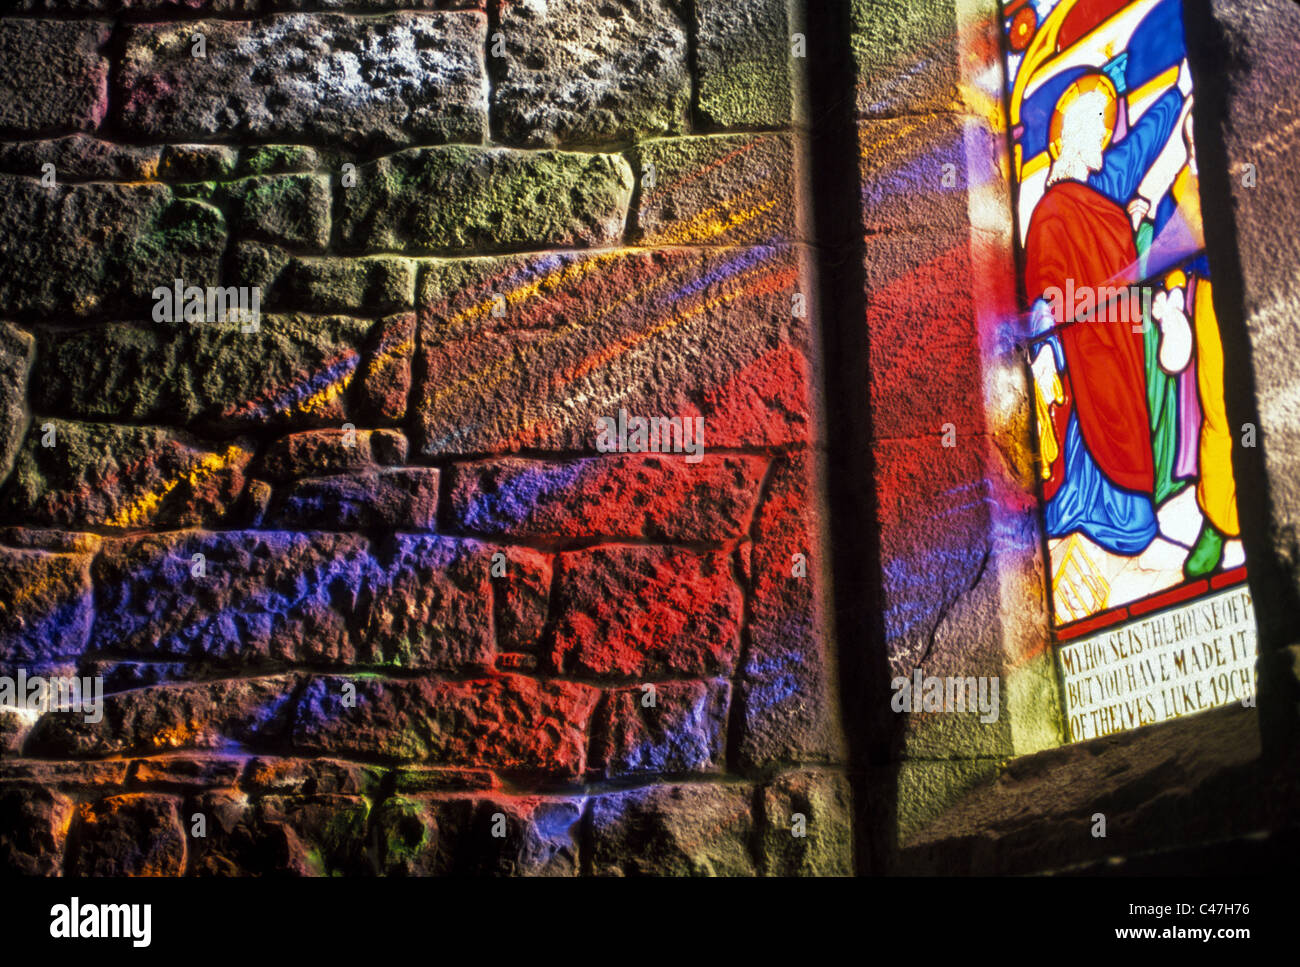 Bright Sunlight Refracted Through A Stained-glass Window